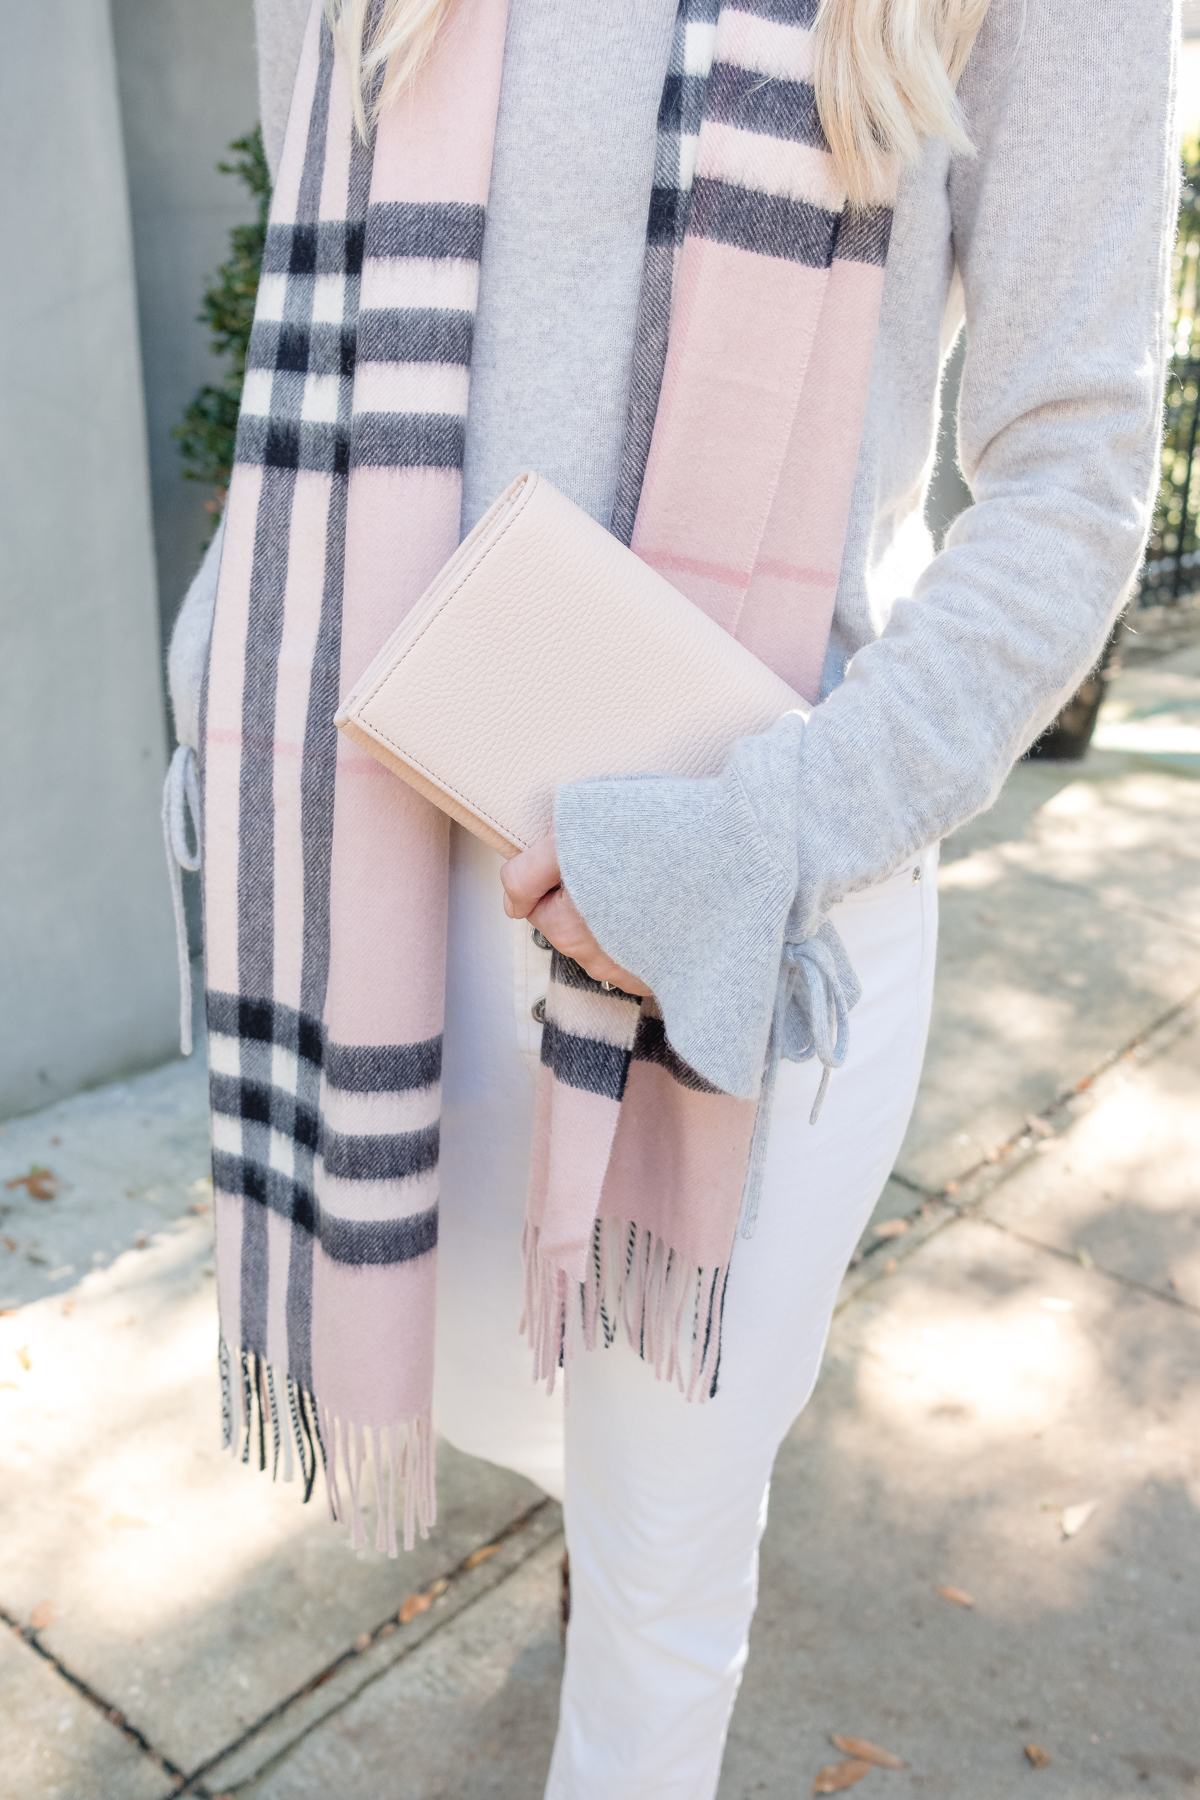 jeans to wear year round and a pink scarf